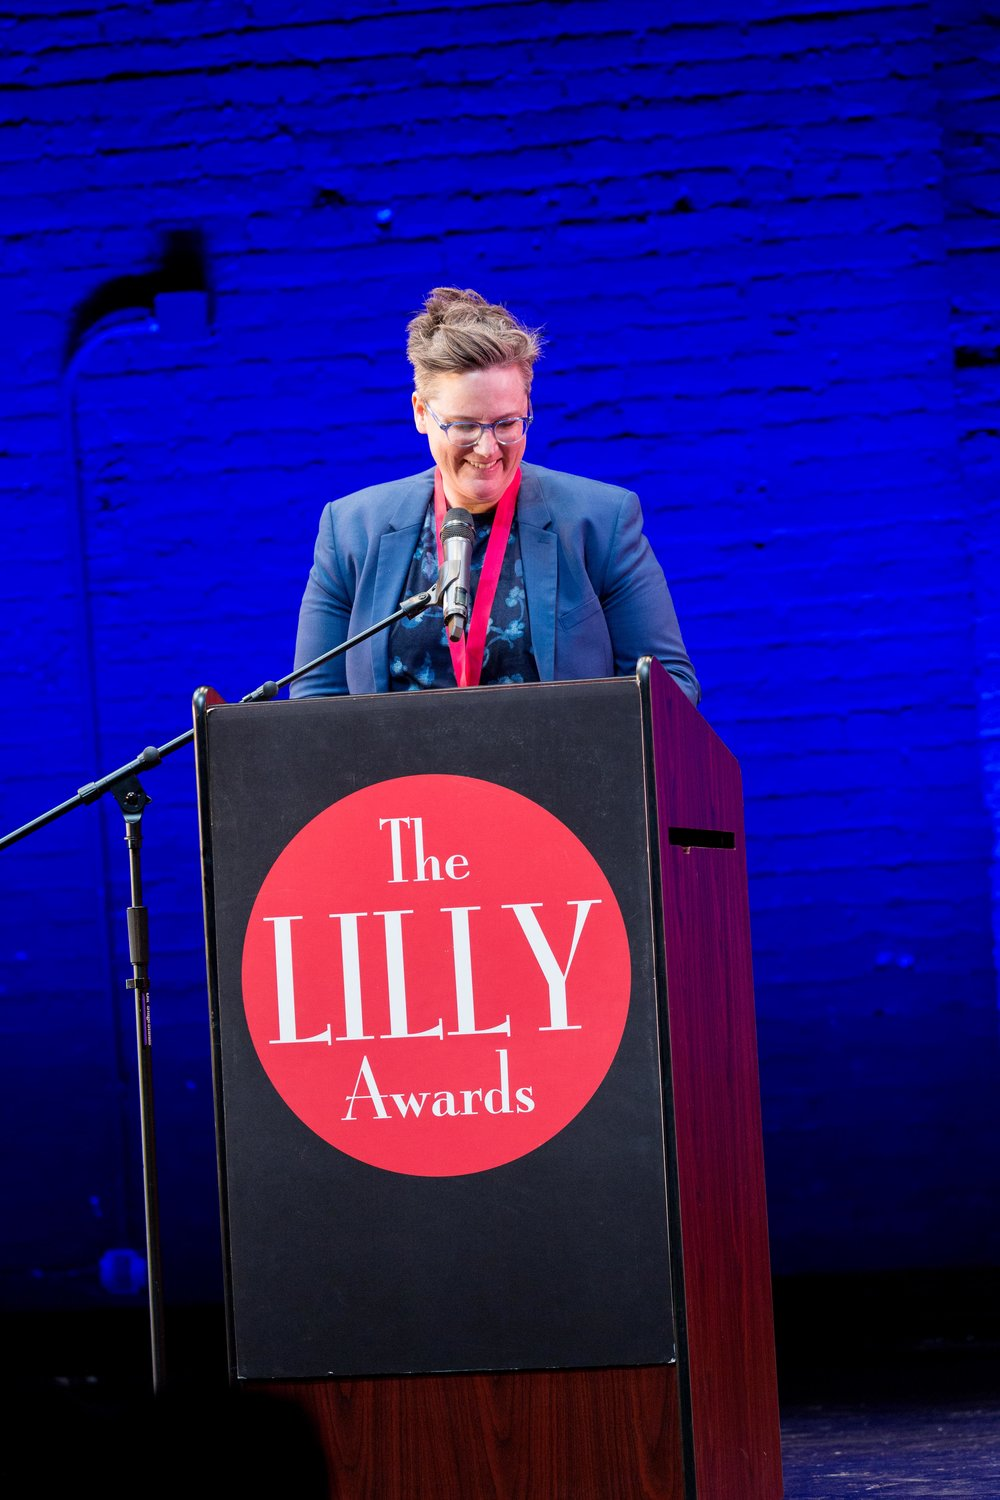 lilly awards 2018-052.jpg